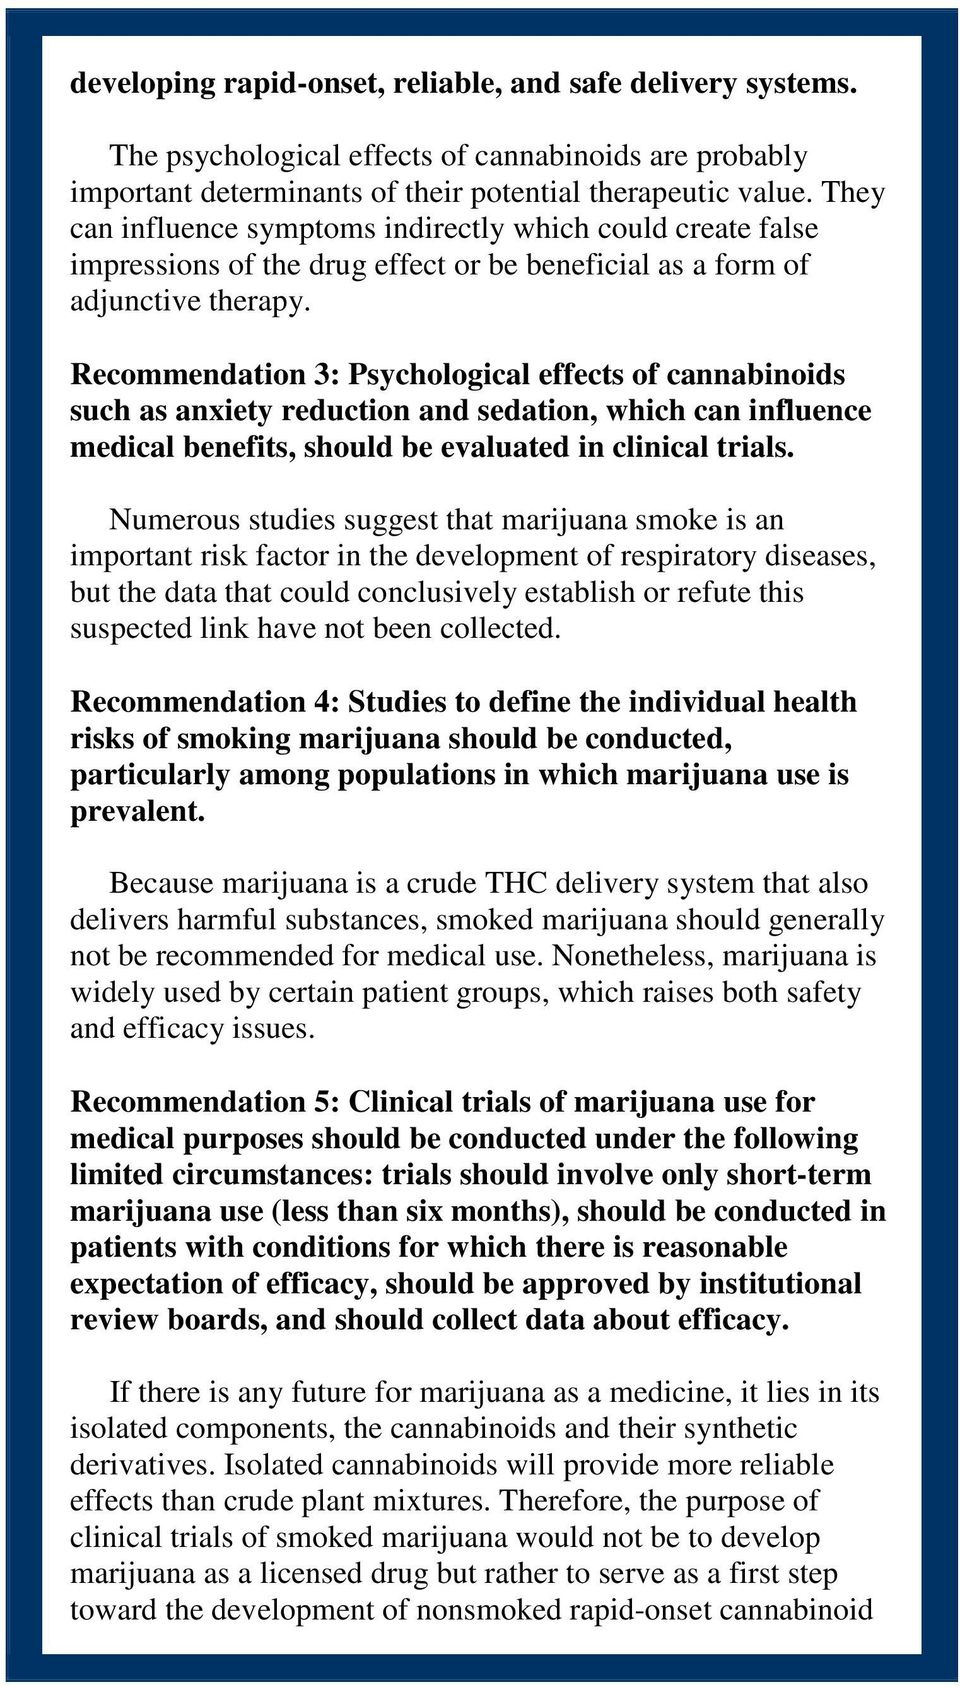 Recommendation 3: Psychological effects of cannabinoids such as anxiety reduction and sedation, which can influence medical benefits, should be evaluated in clinical trials.